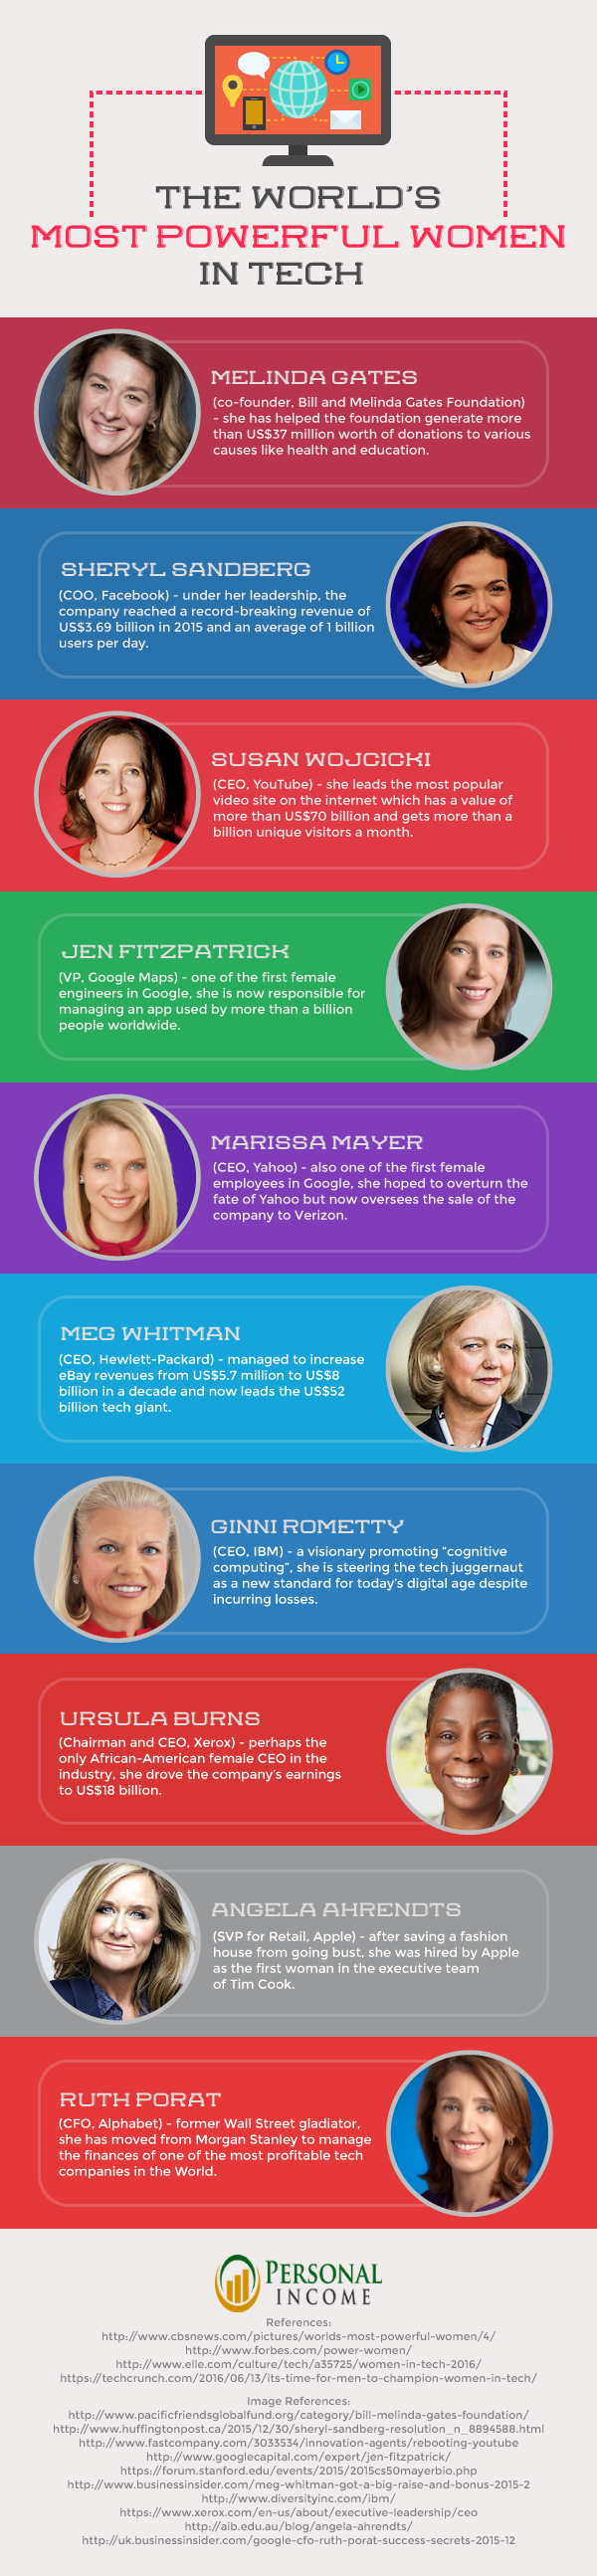 The-World's-Most-Powerful-Women-In-Tech-thewoomag-top-magazine-for-women